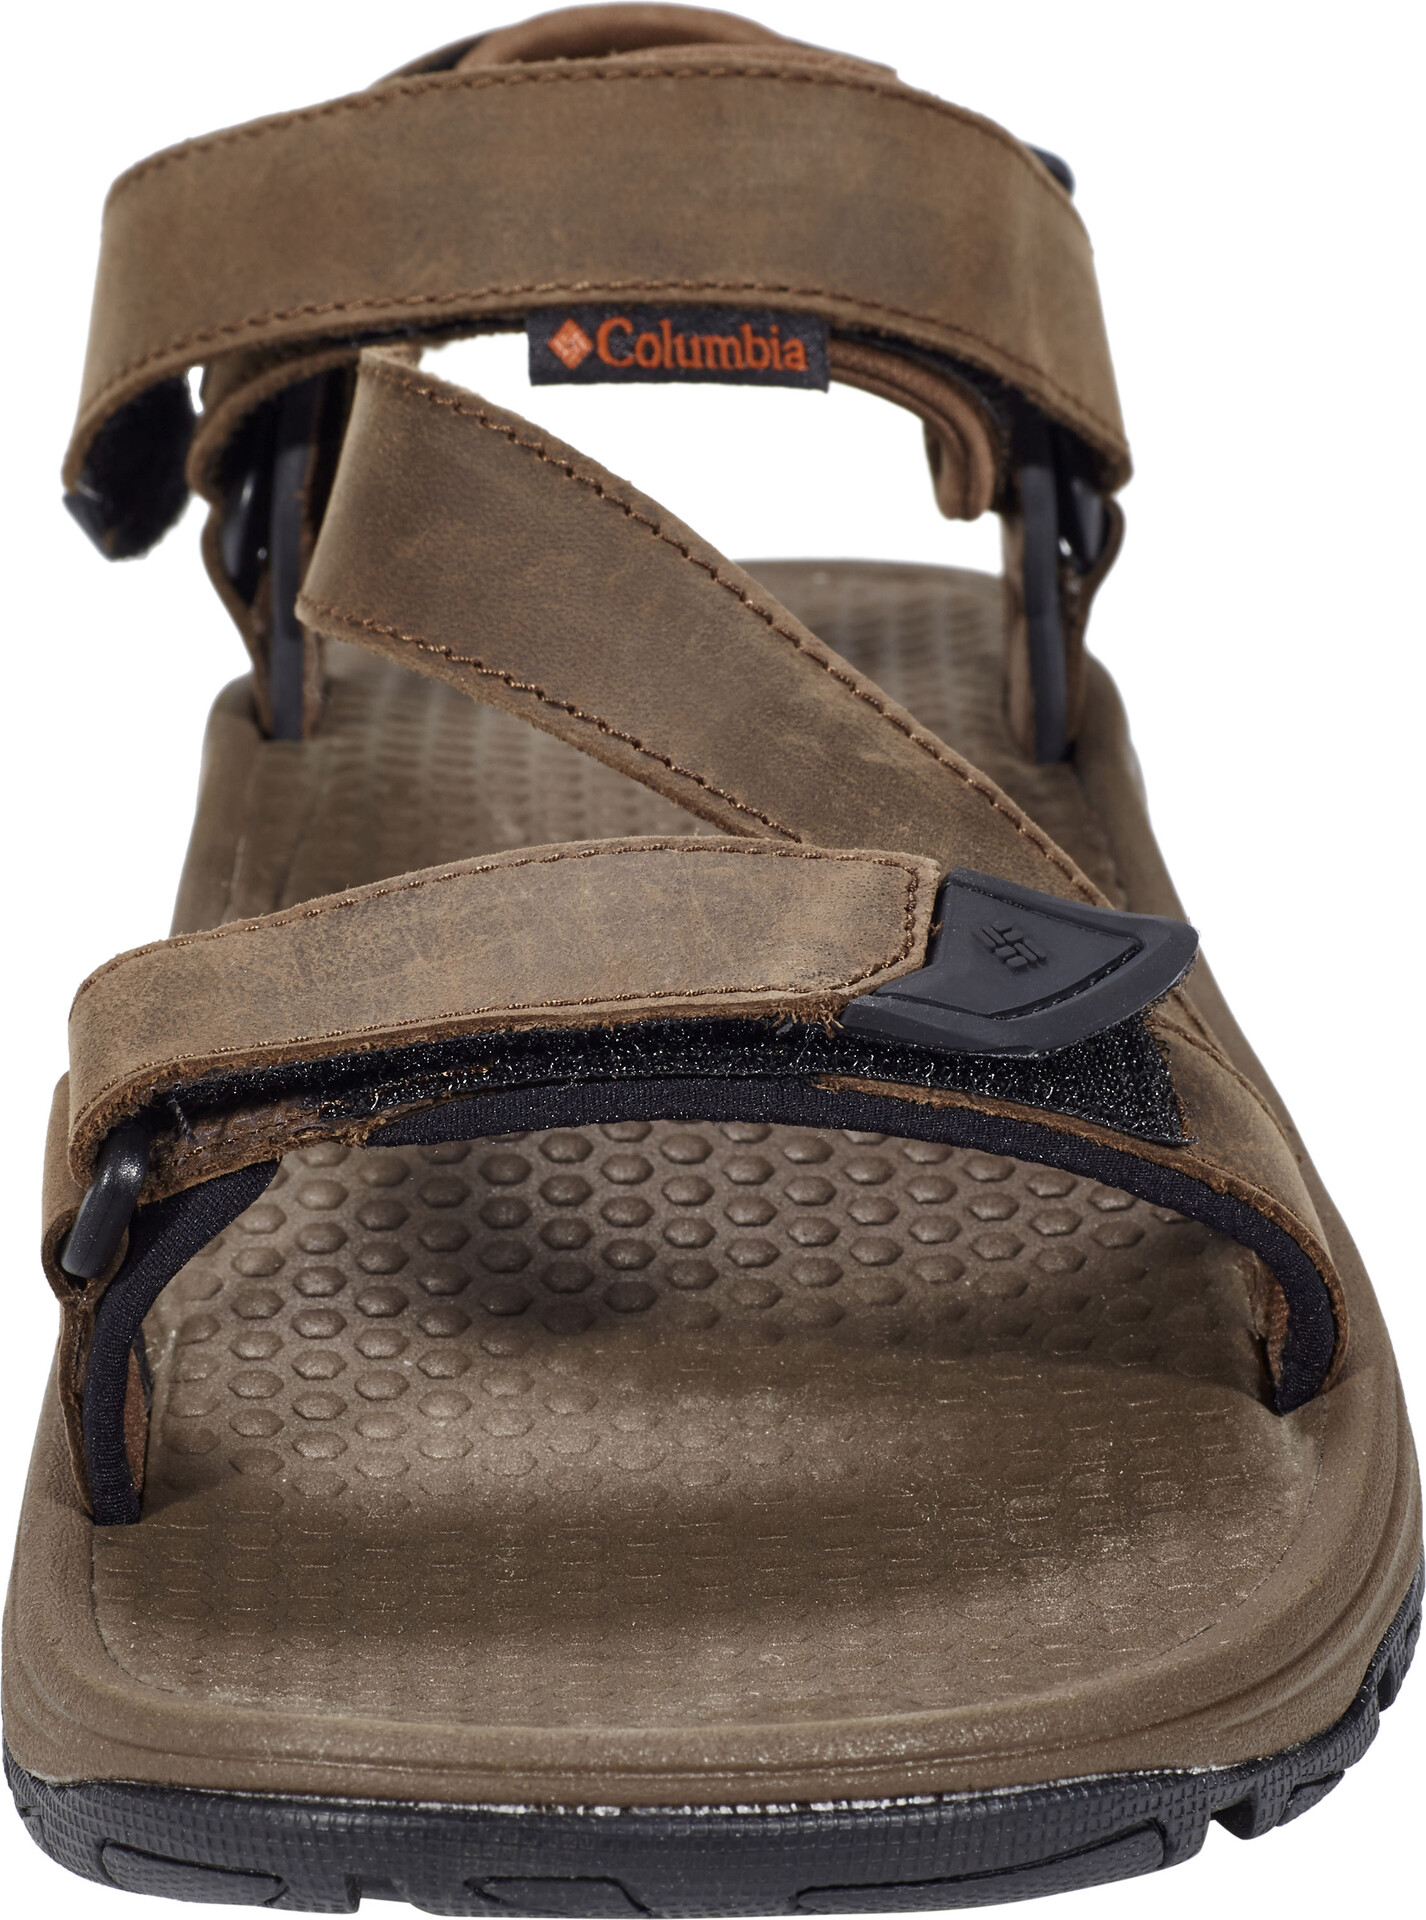 BIG WATER LEATHER Columbia Homme Sandales